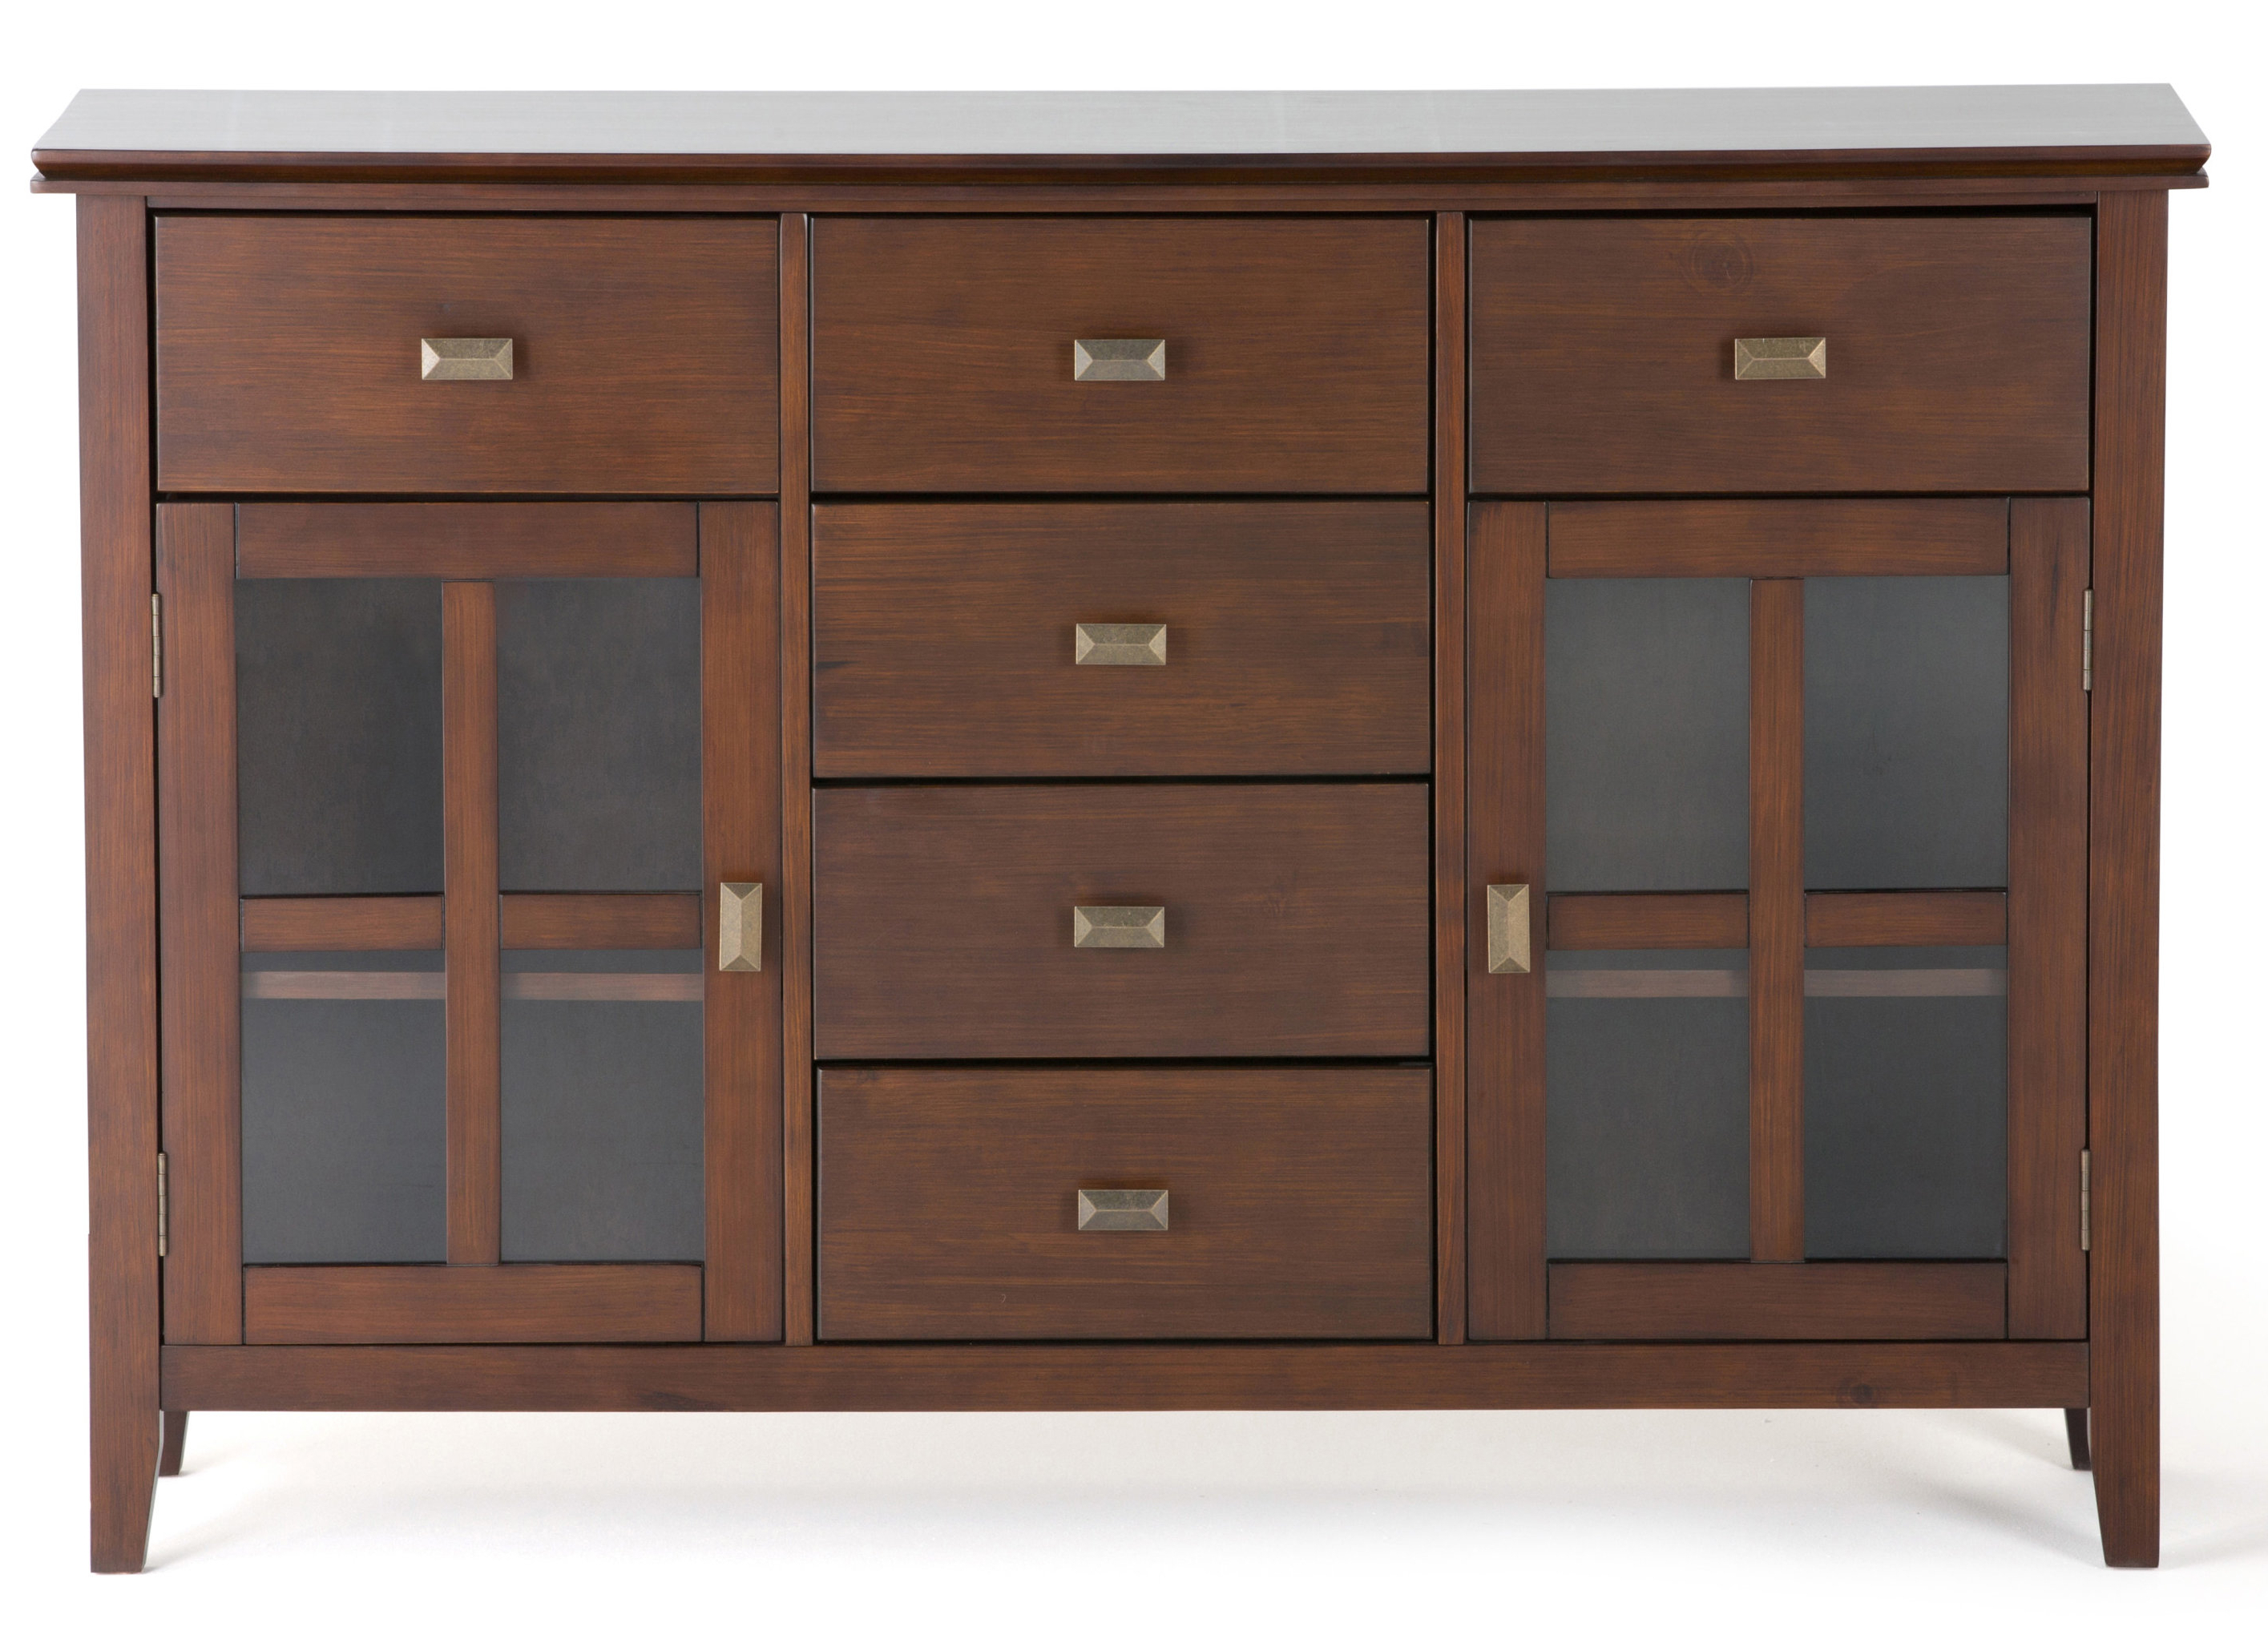 Wayfair With Dark Smoked Oak With White Marble Top Sideboards (View 19 of 20)